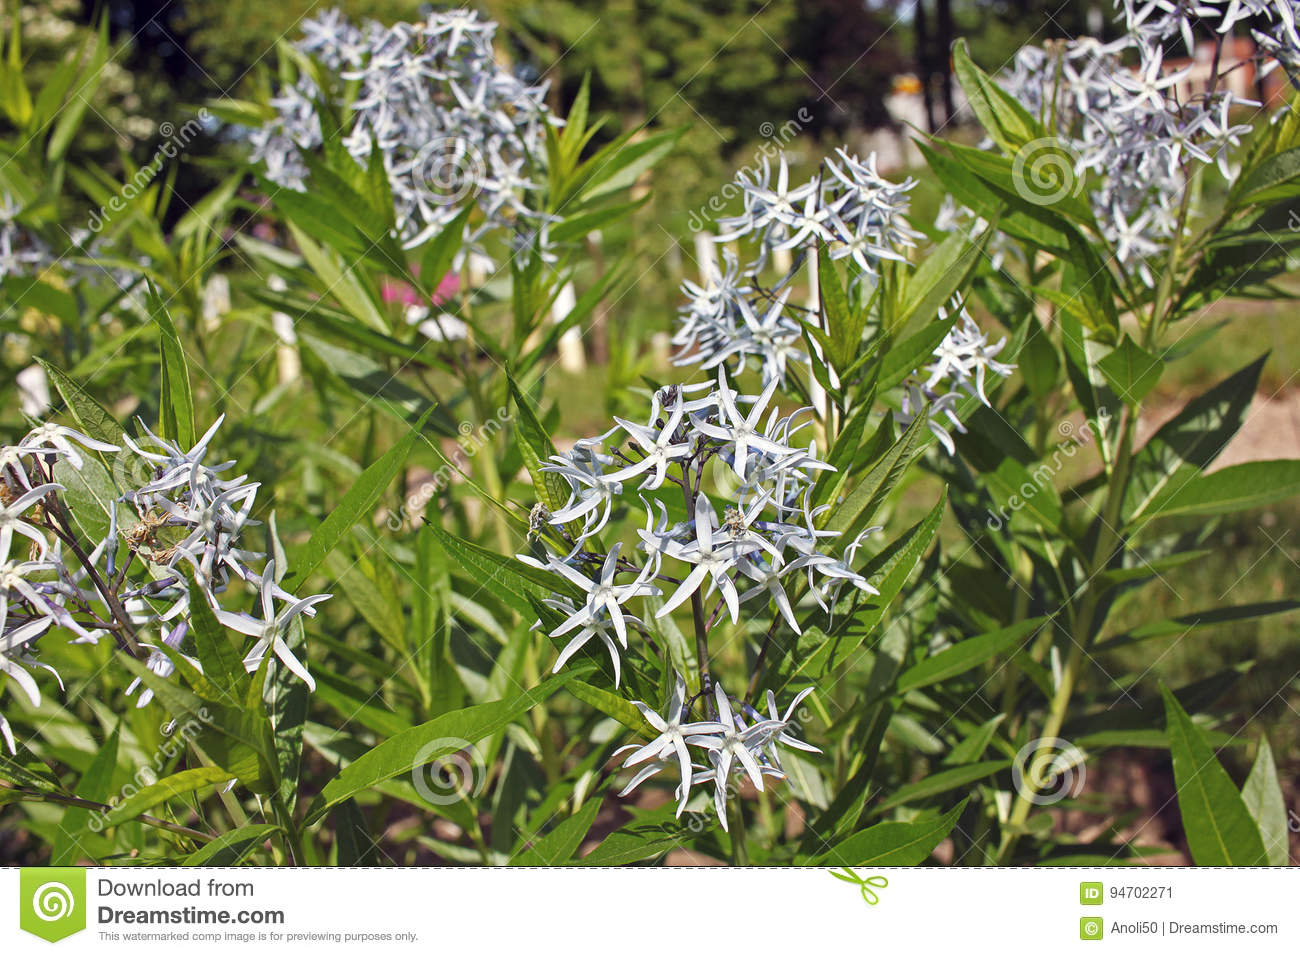 Amsonia Tabernaemontana Flowers Stock Image Image Of Bloom Flora